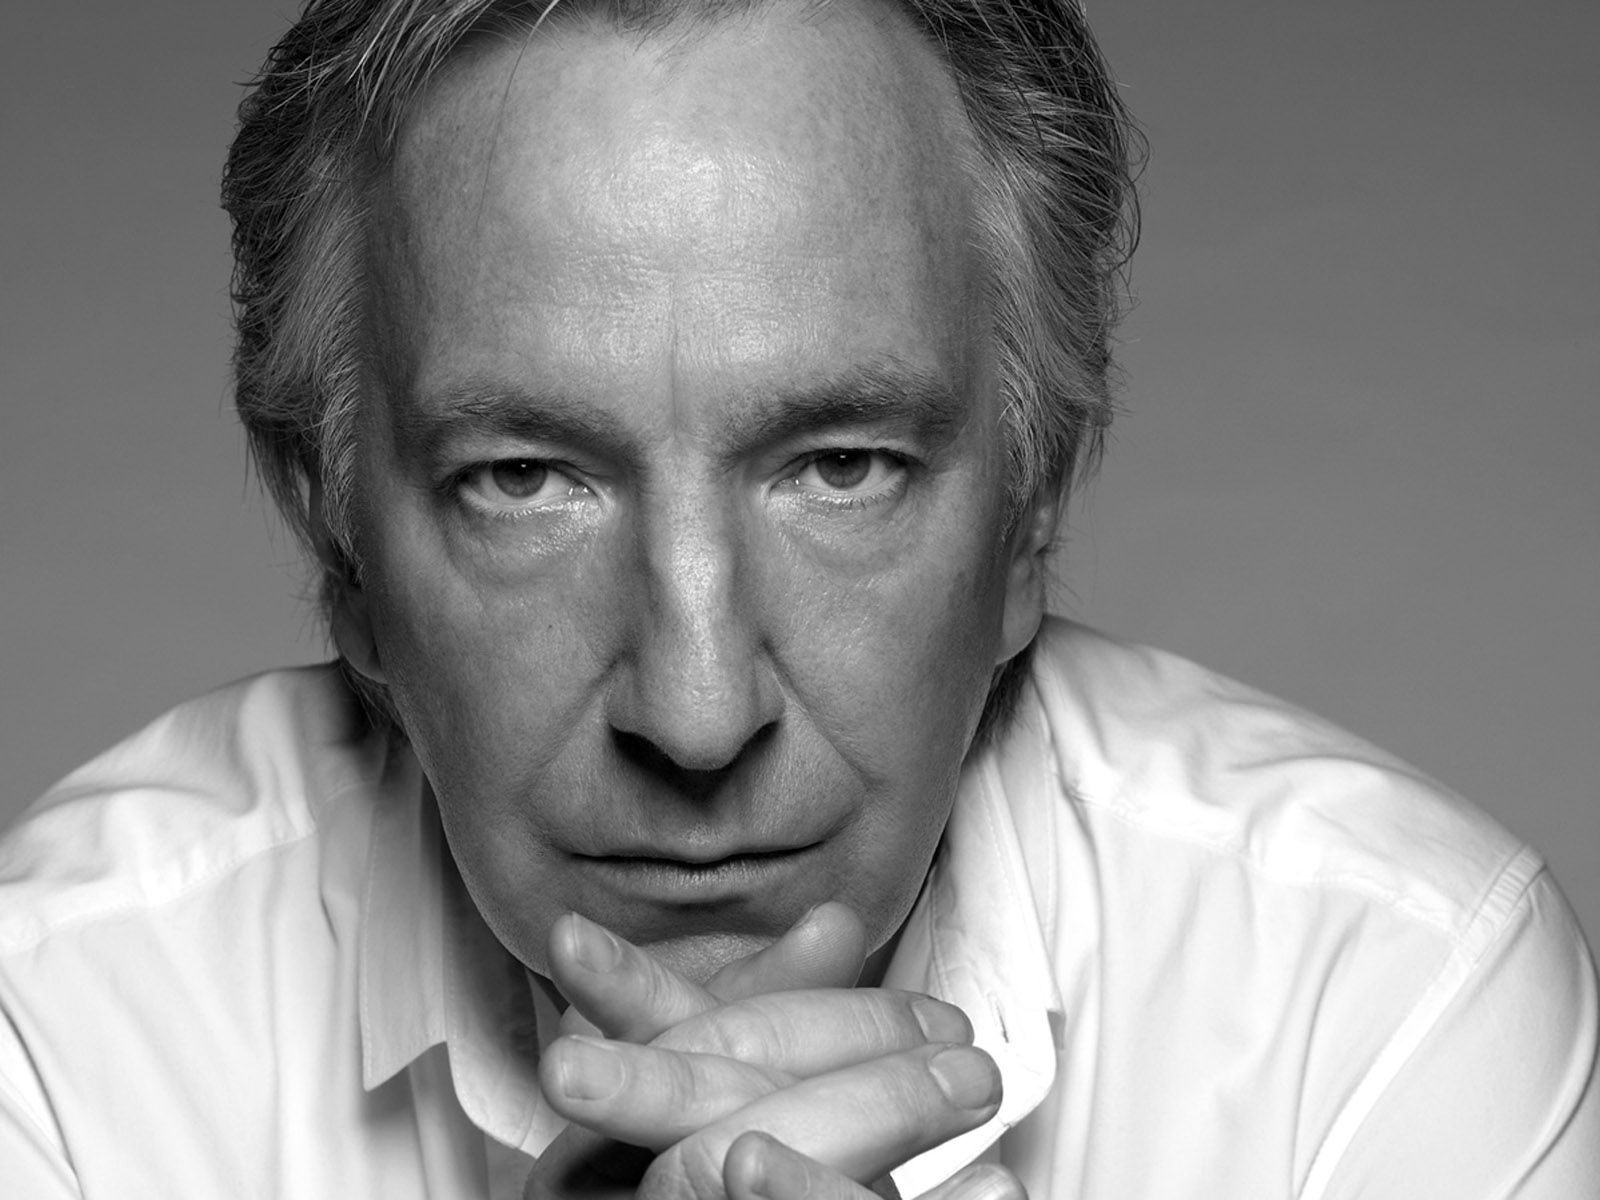 monochrome alan rickman wallpaper 58115